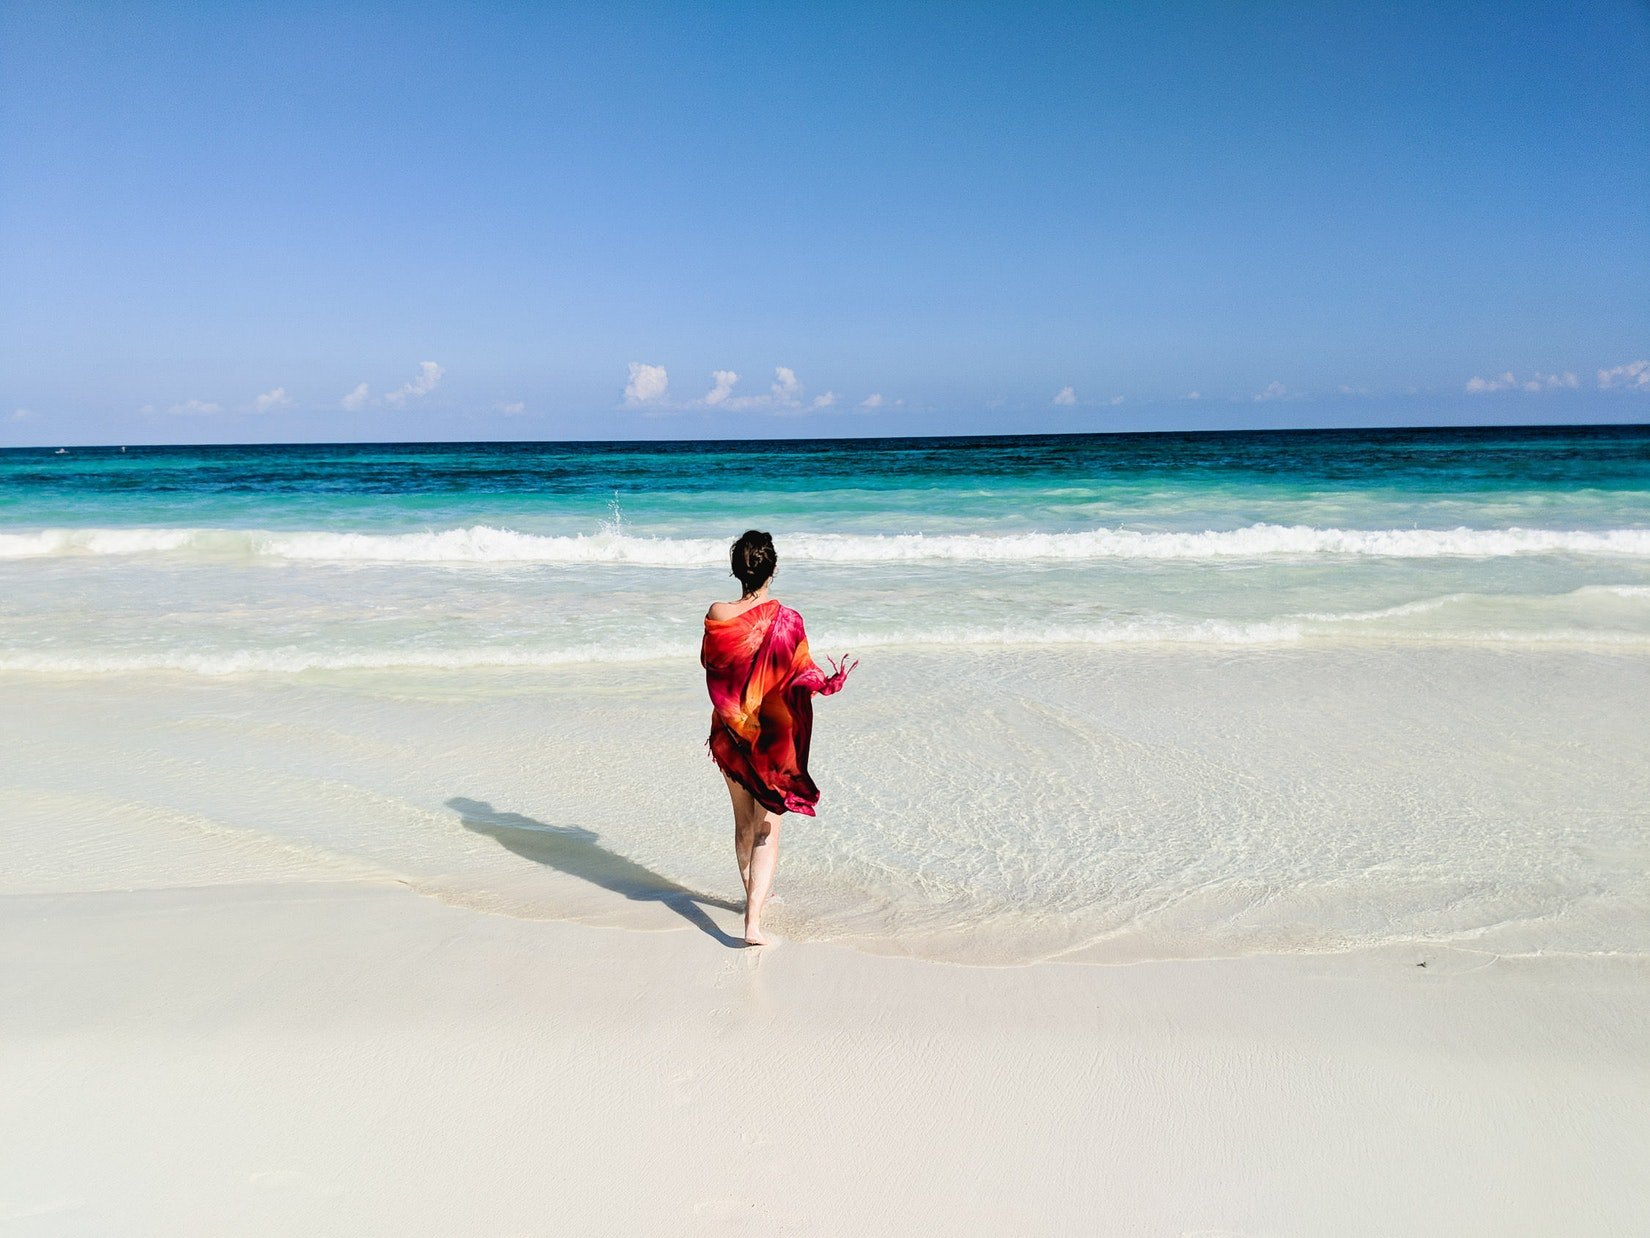 Girl on the beach in Tulum, Mexico